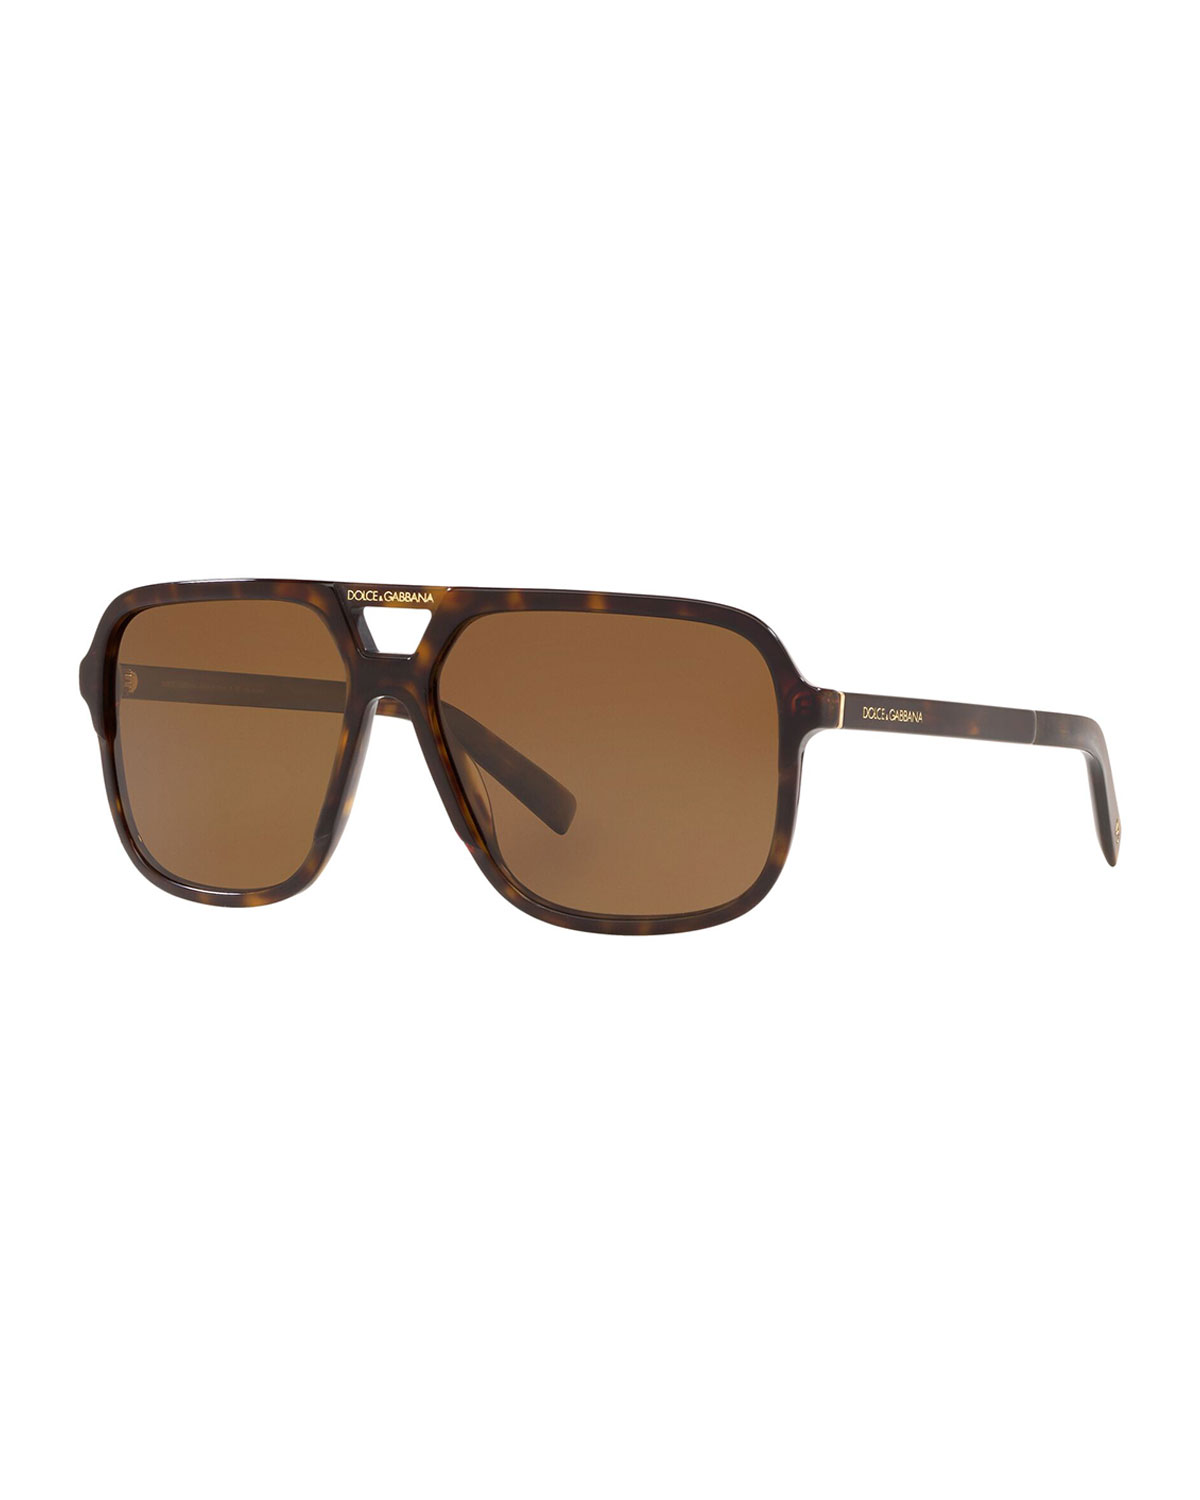 Dolce & Gabbana Men's Square Acetate Double-Bridge Sunglasses